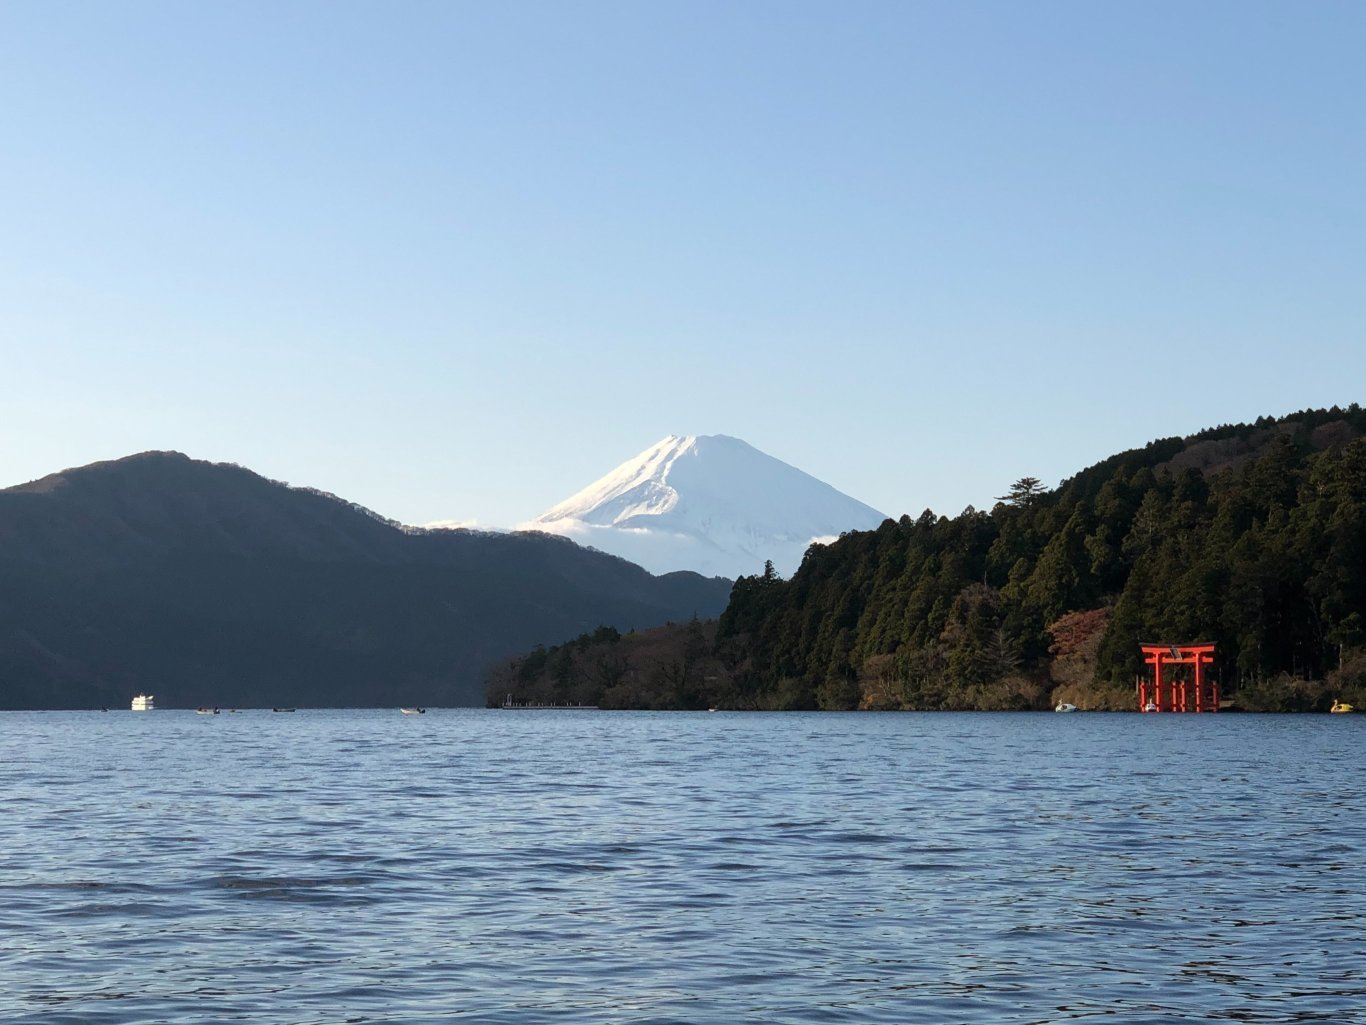 1-Day Hakone Tour from Tokyo - Japan Itinerary